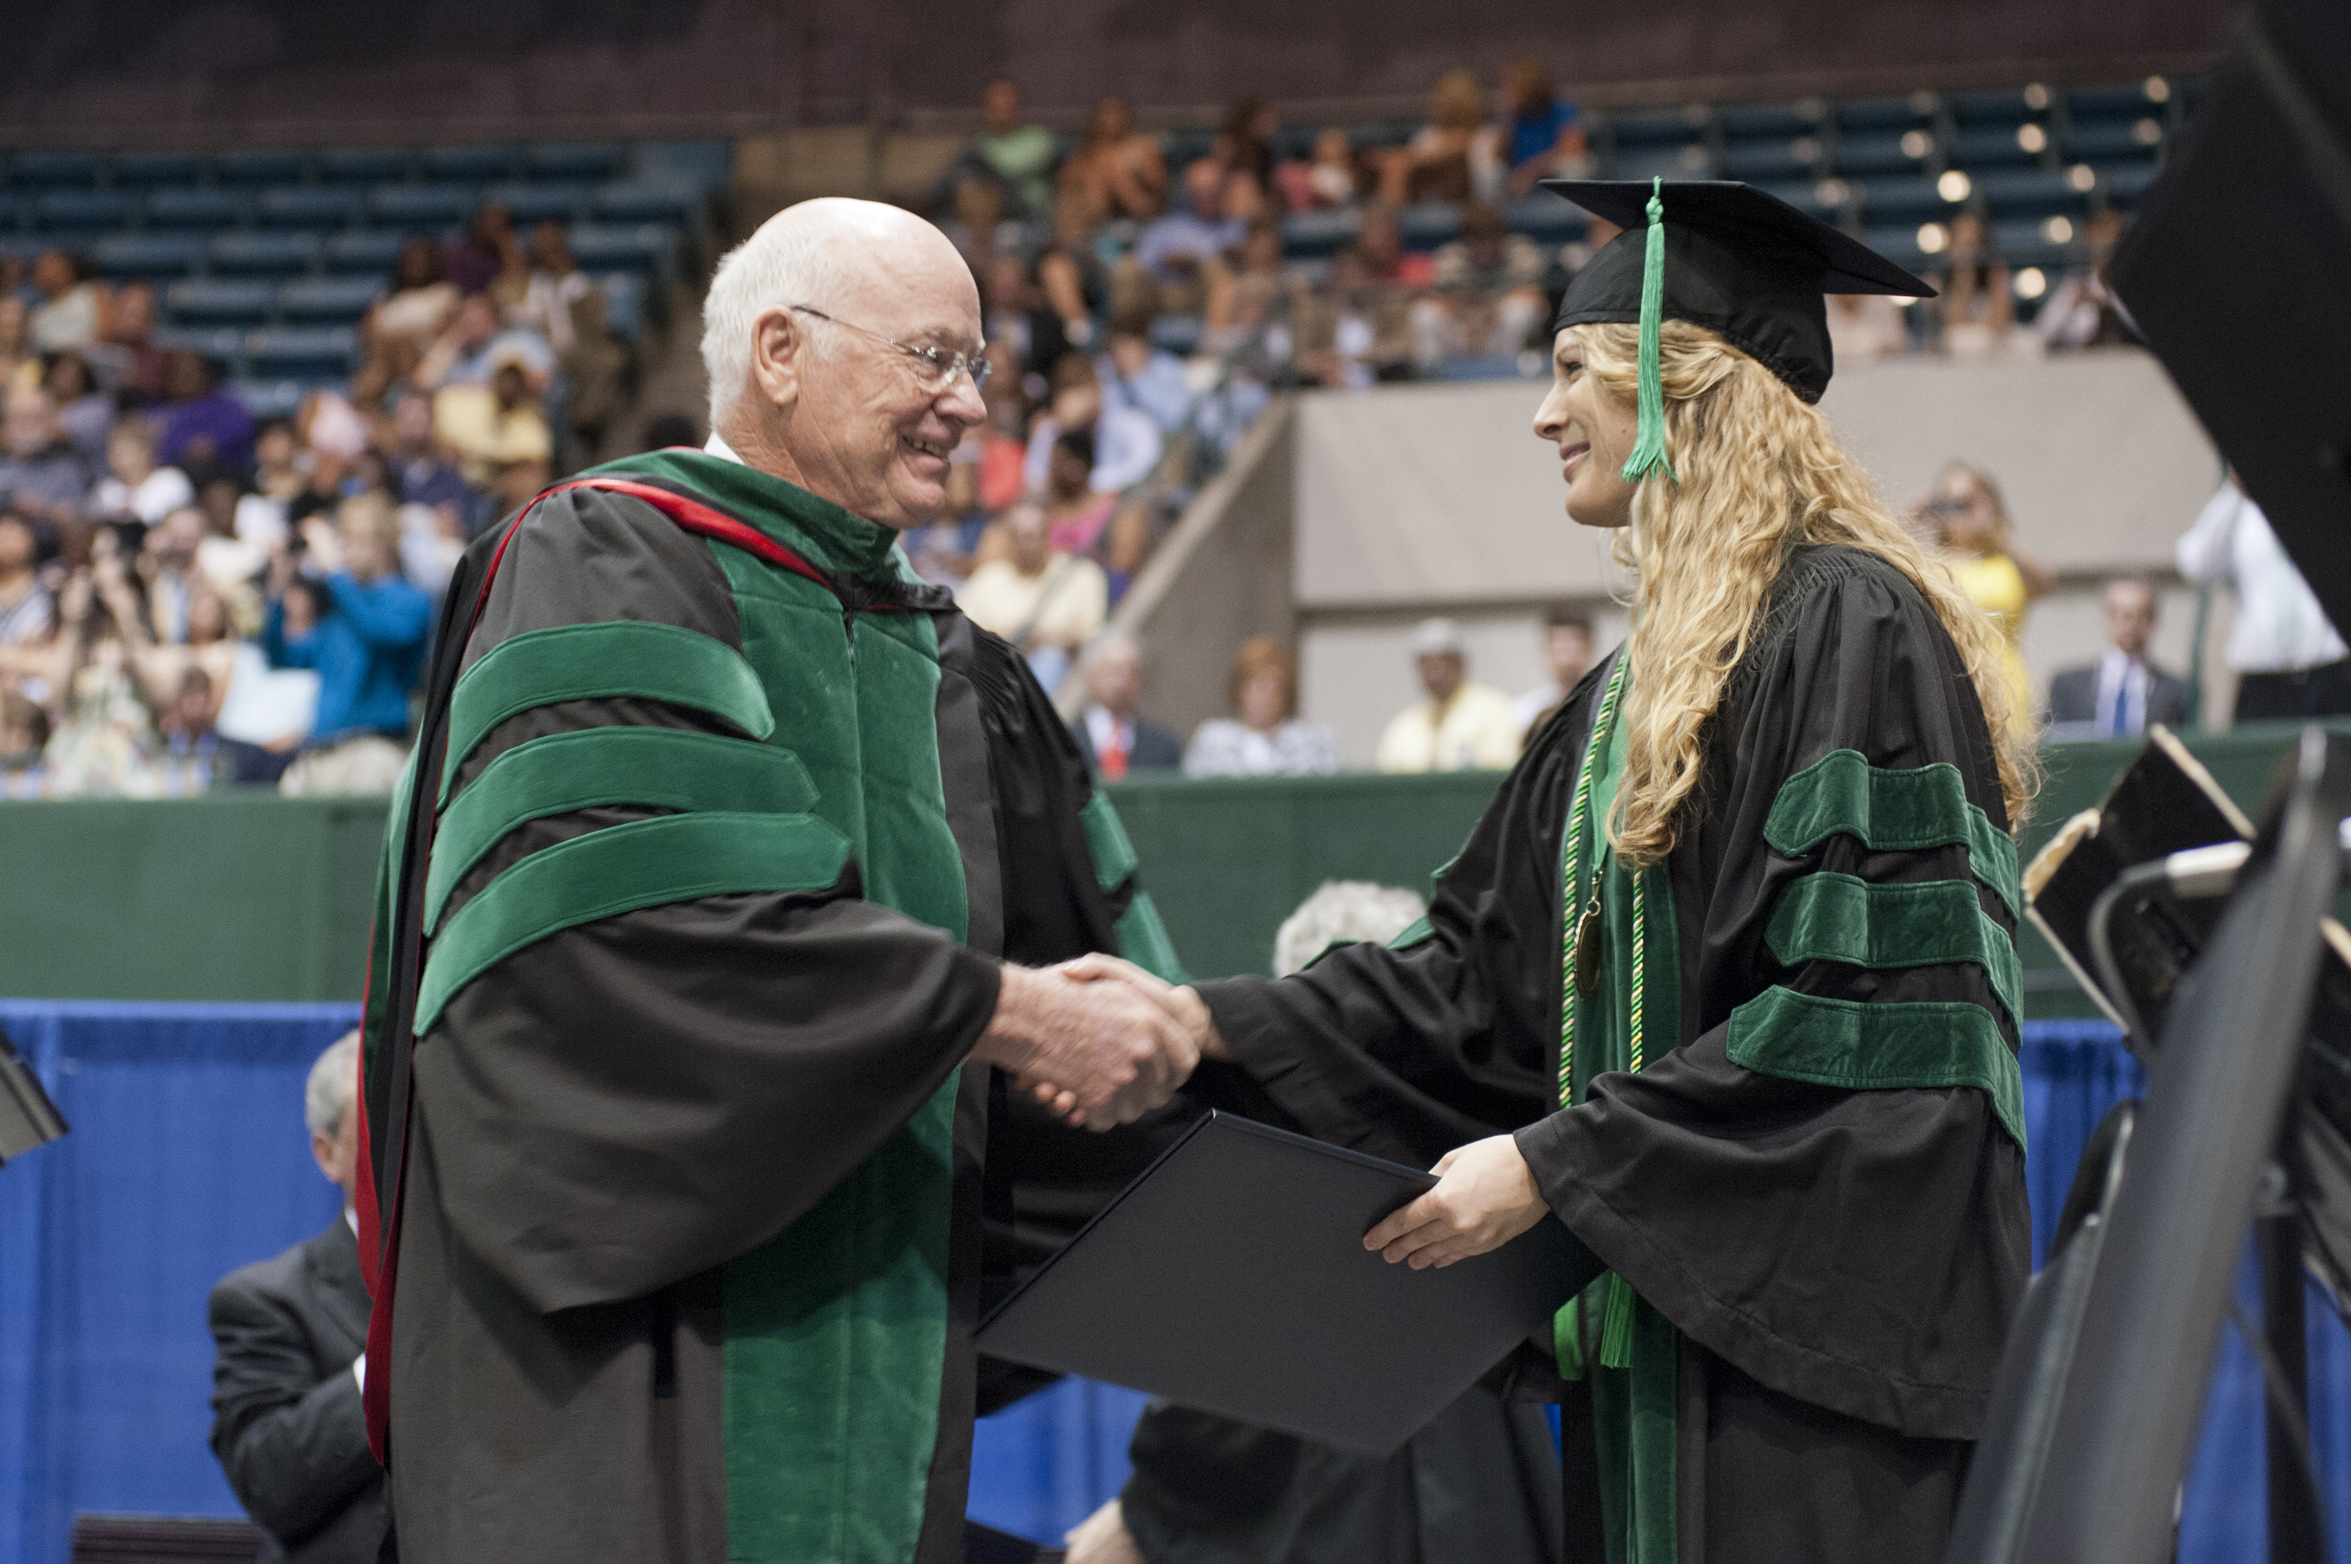 In largest commencement ever, UMMC confers 846 degrees to health-care and science professionals